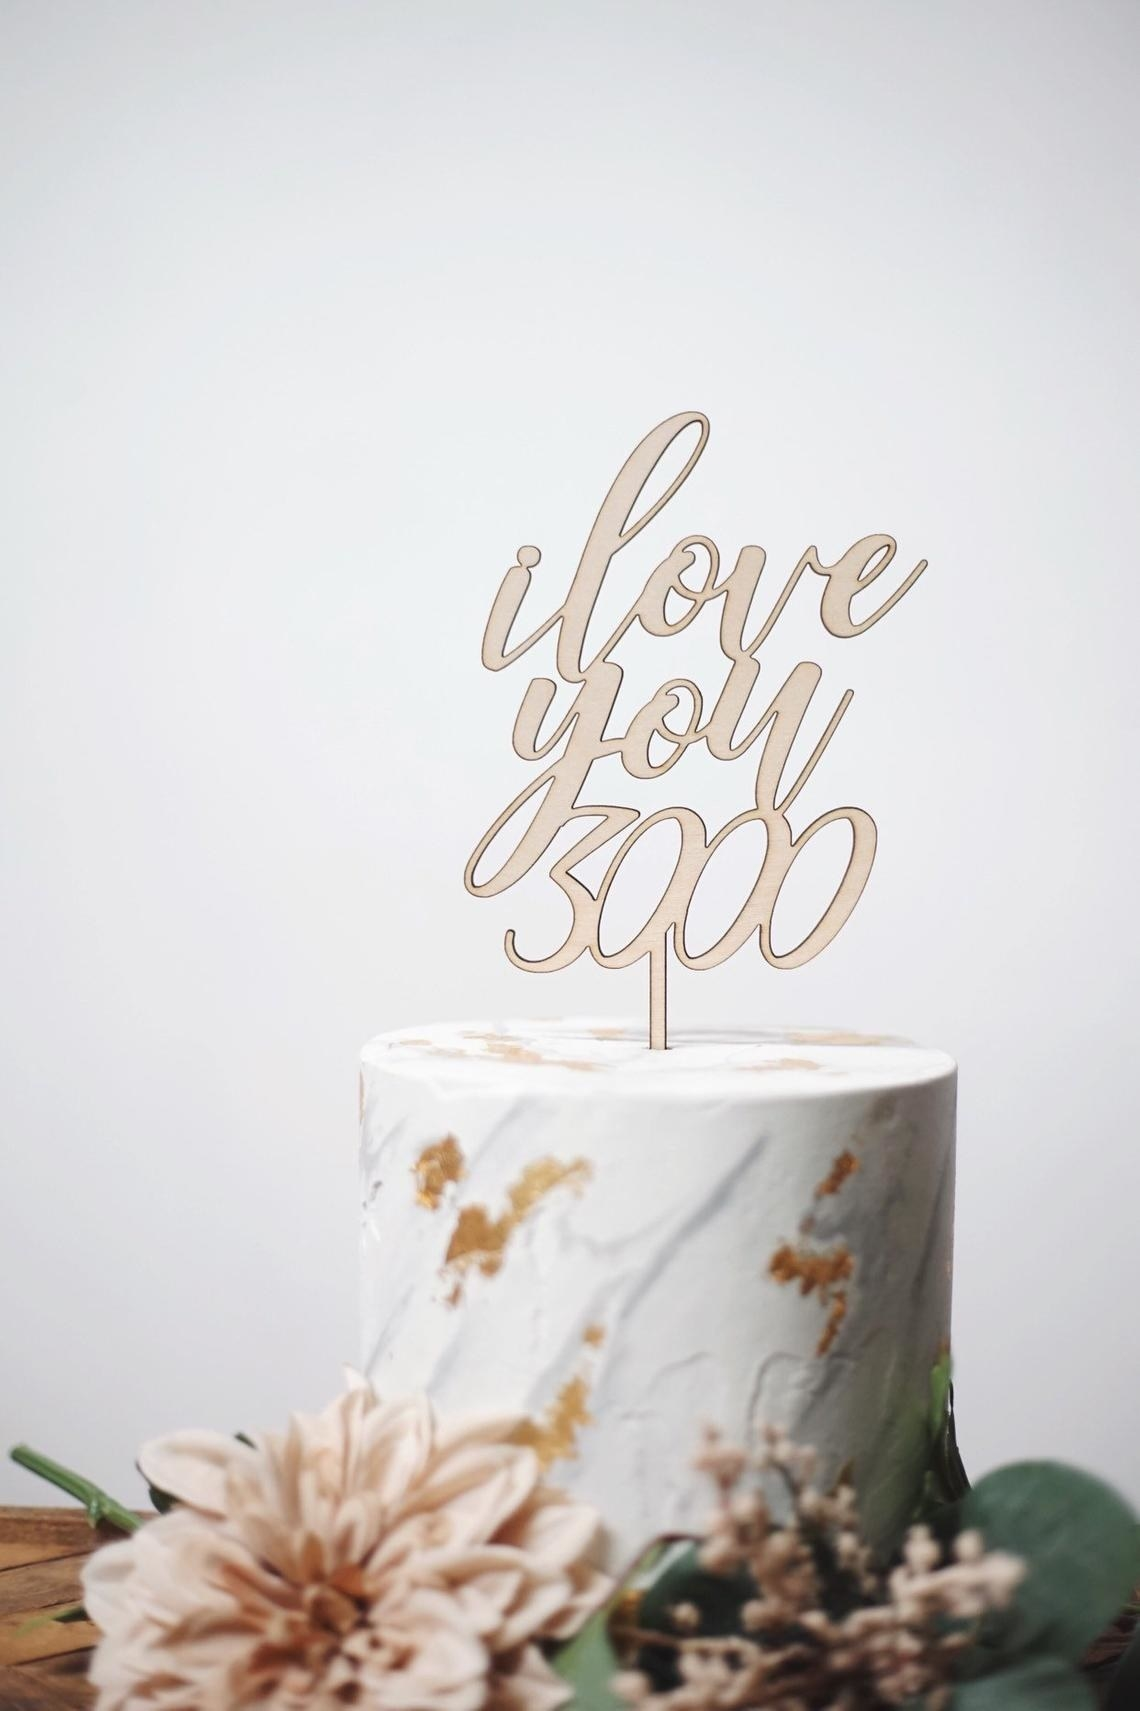 gold cake topper on a marble cake with gold leaf accents and flowers around it